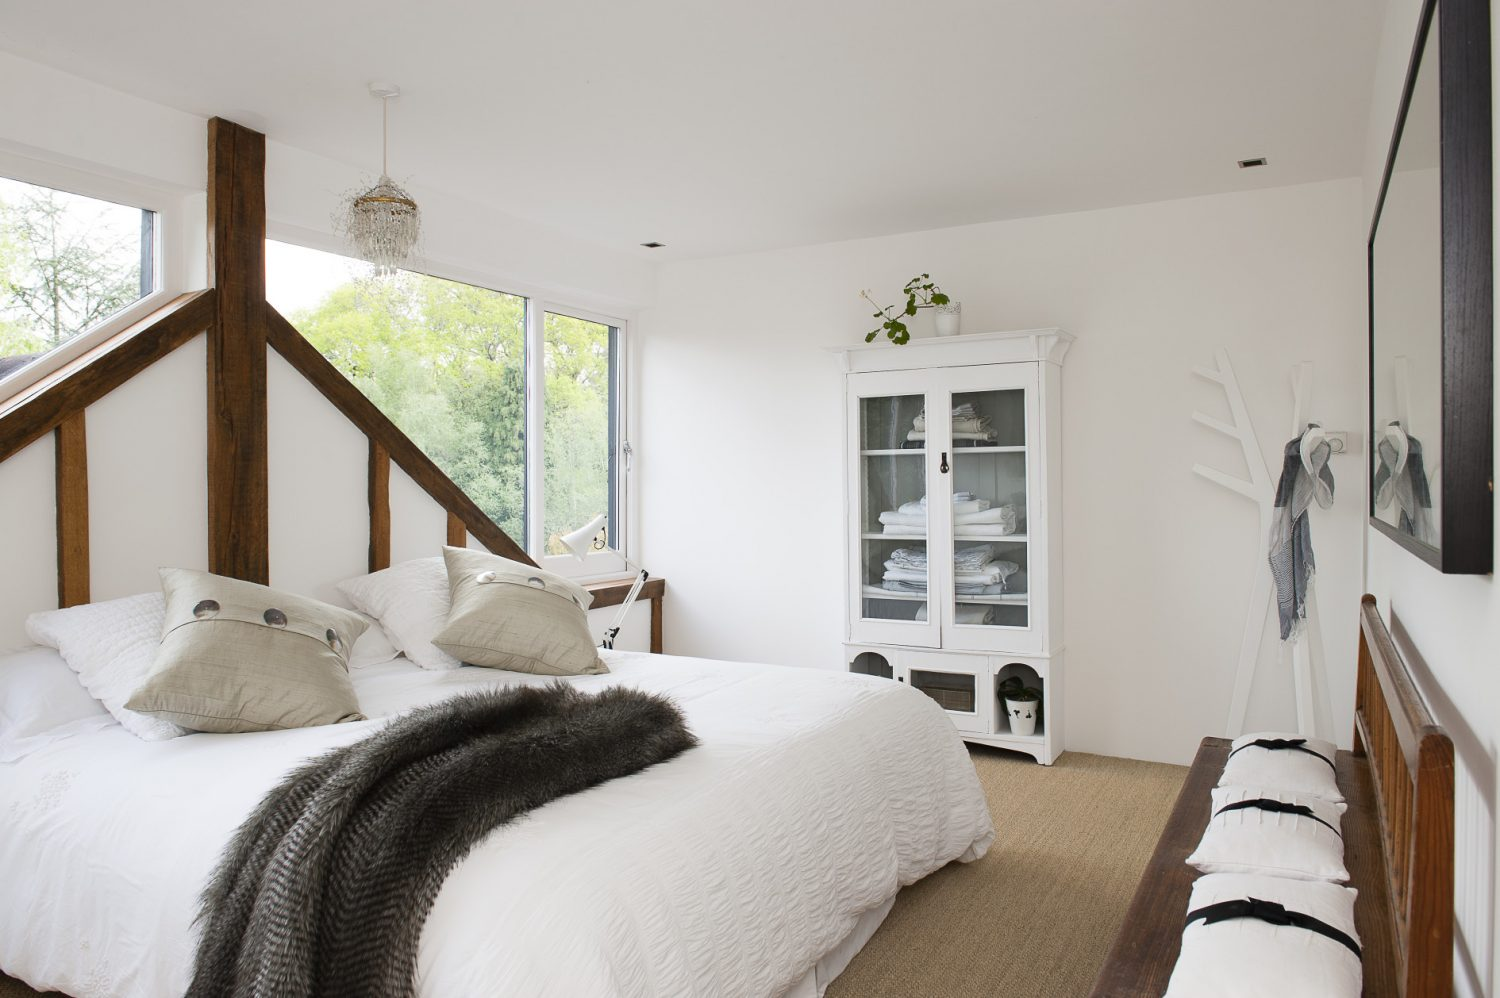 The large window overlooking the treetops is also the headboard for the double bed in one of the guest bedrooms. Sue has cleverly mirrored the view on the opposite wall so one can lie in bed still looking out over the surrounding greenery